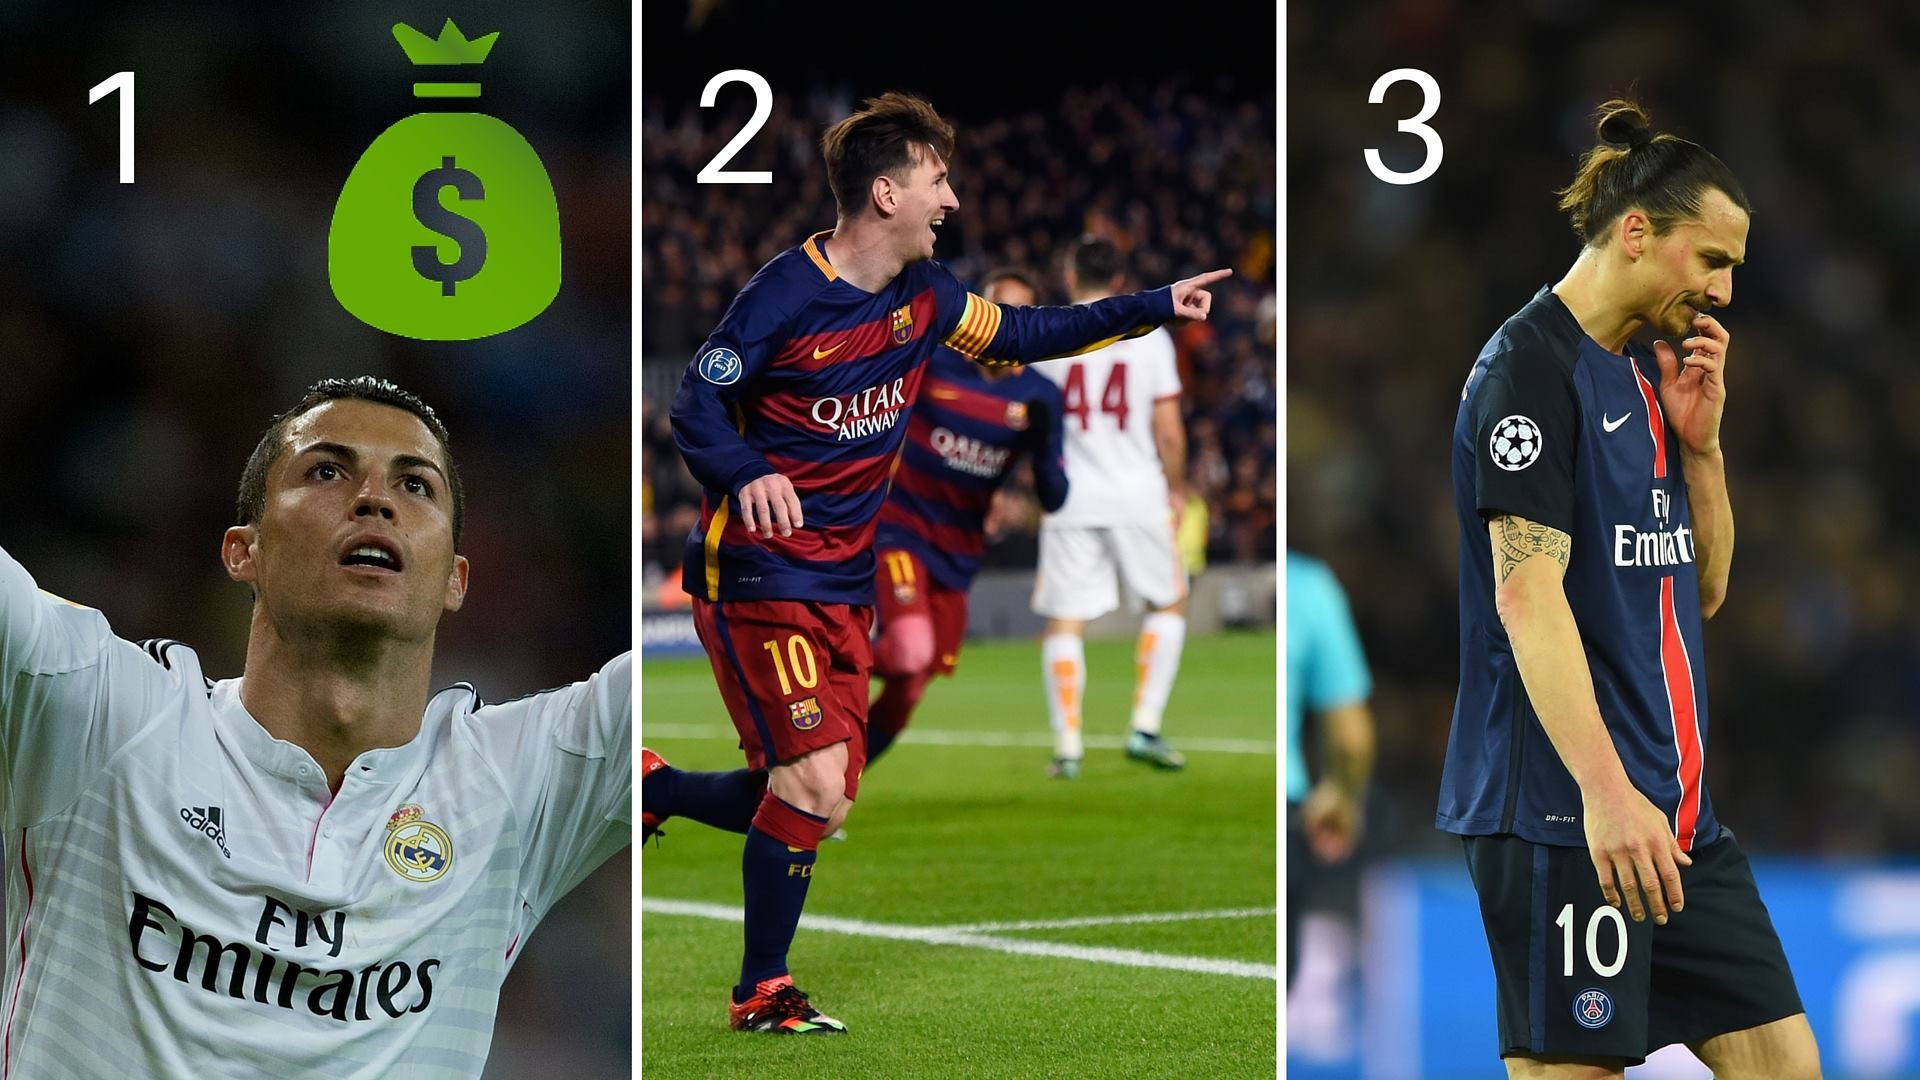 Fifa17 Stats of the top three revealed; Cristiano Ronaldo, Lionel Messi &  Neymar   Never Miss A Moment   Pinterest   Lionel messi, Crist…